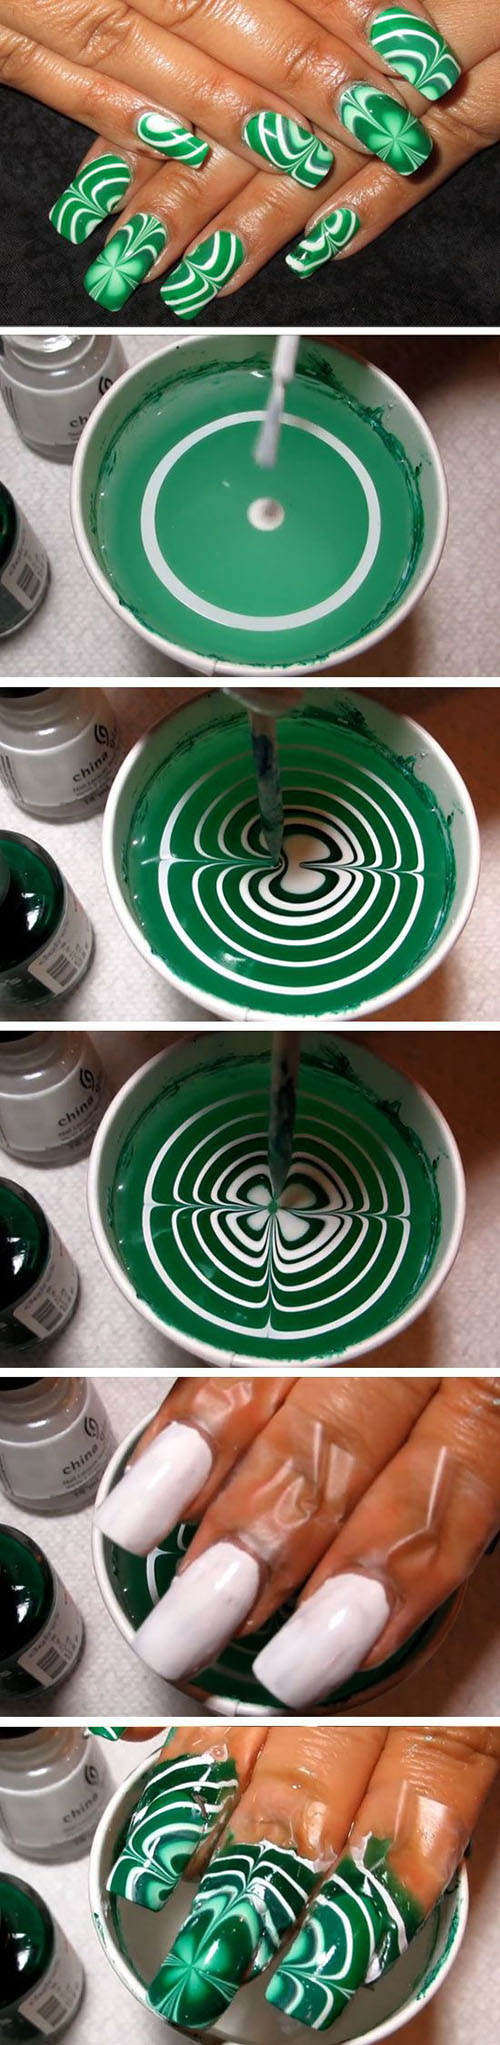 22 Water Marble Shamrocks 913a